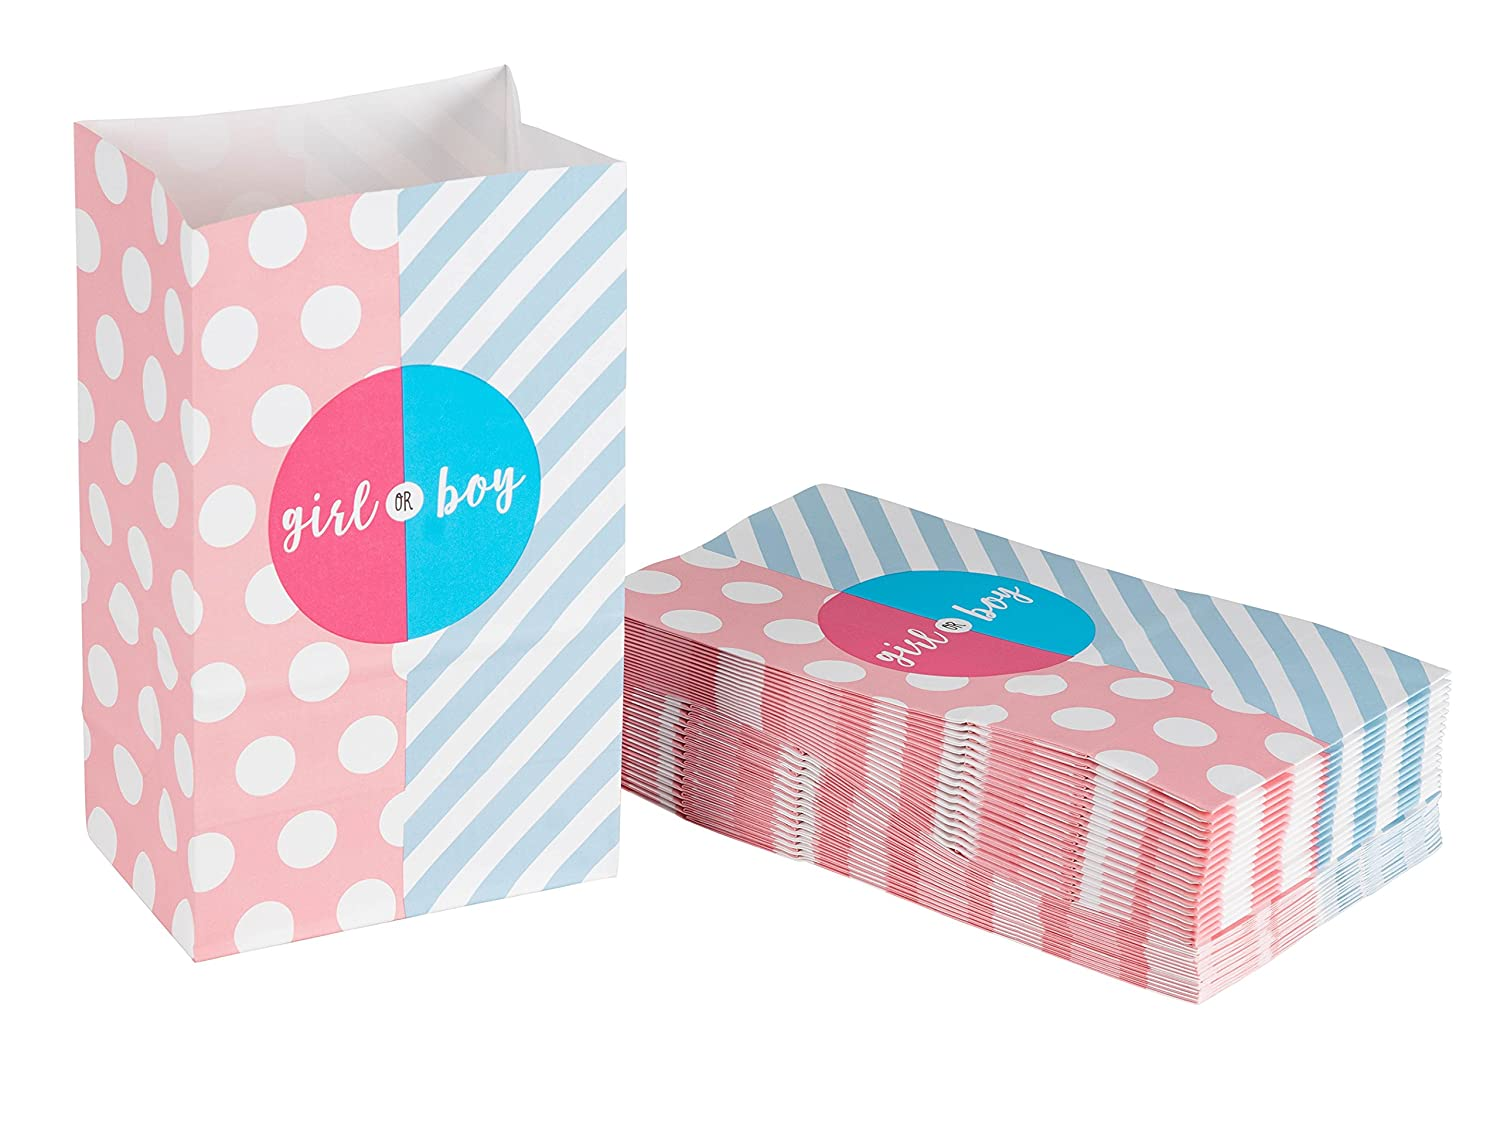 Blue Panda Party Treat Bags - 36-Pack Gift Bags Gender Reveal Party Supplies Paper Favor Goody Bags for Baby Shower Recyclable Treat Bags - 5.2 x 8.7 x 3.3 inches Pink and Blue